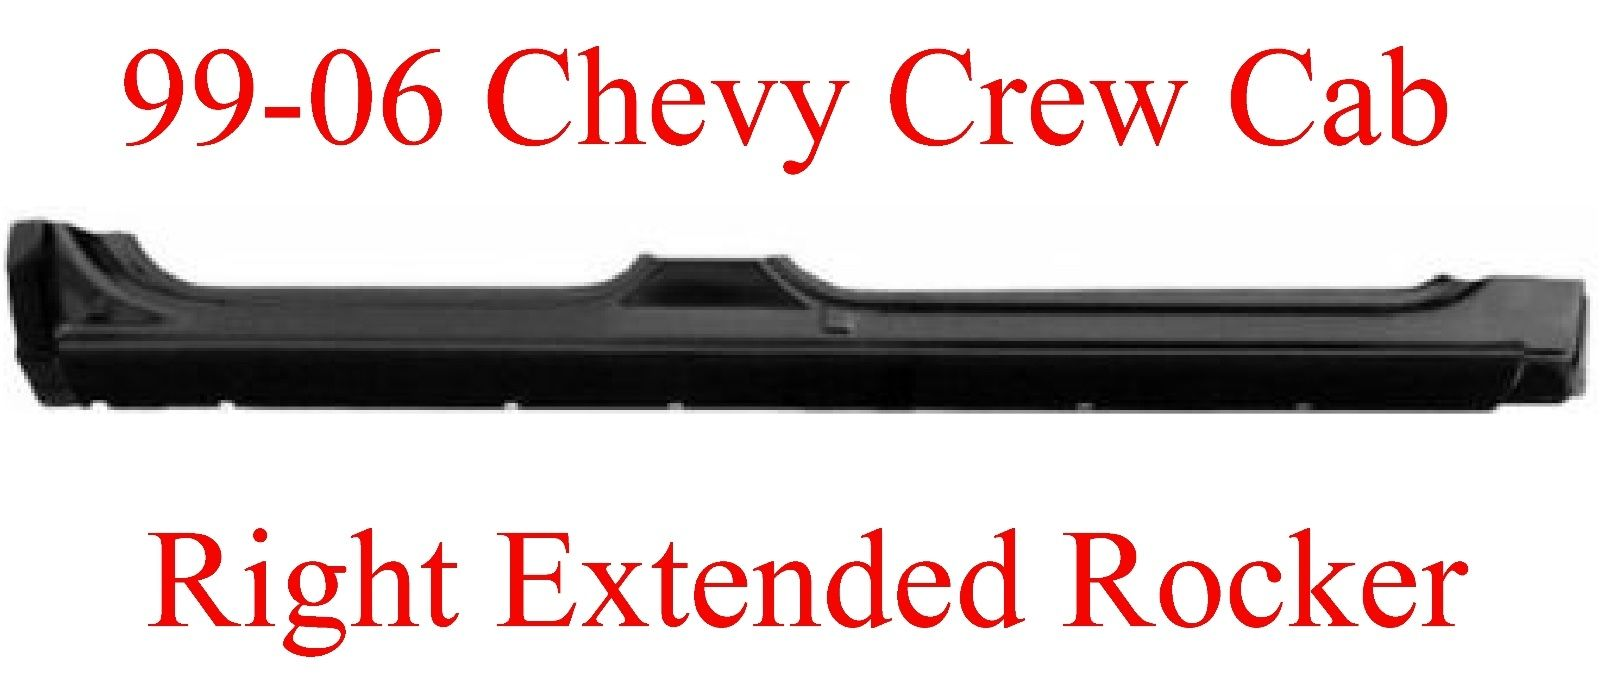 99-06 Chevy GMC Crew Cab Right Extended Rocker